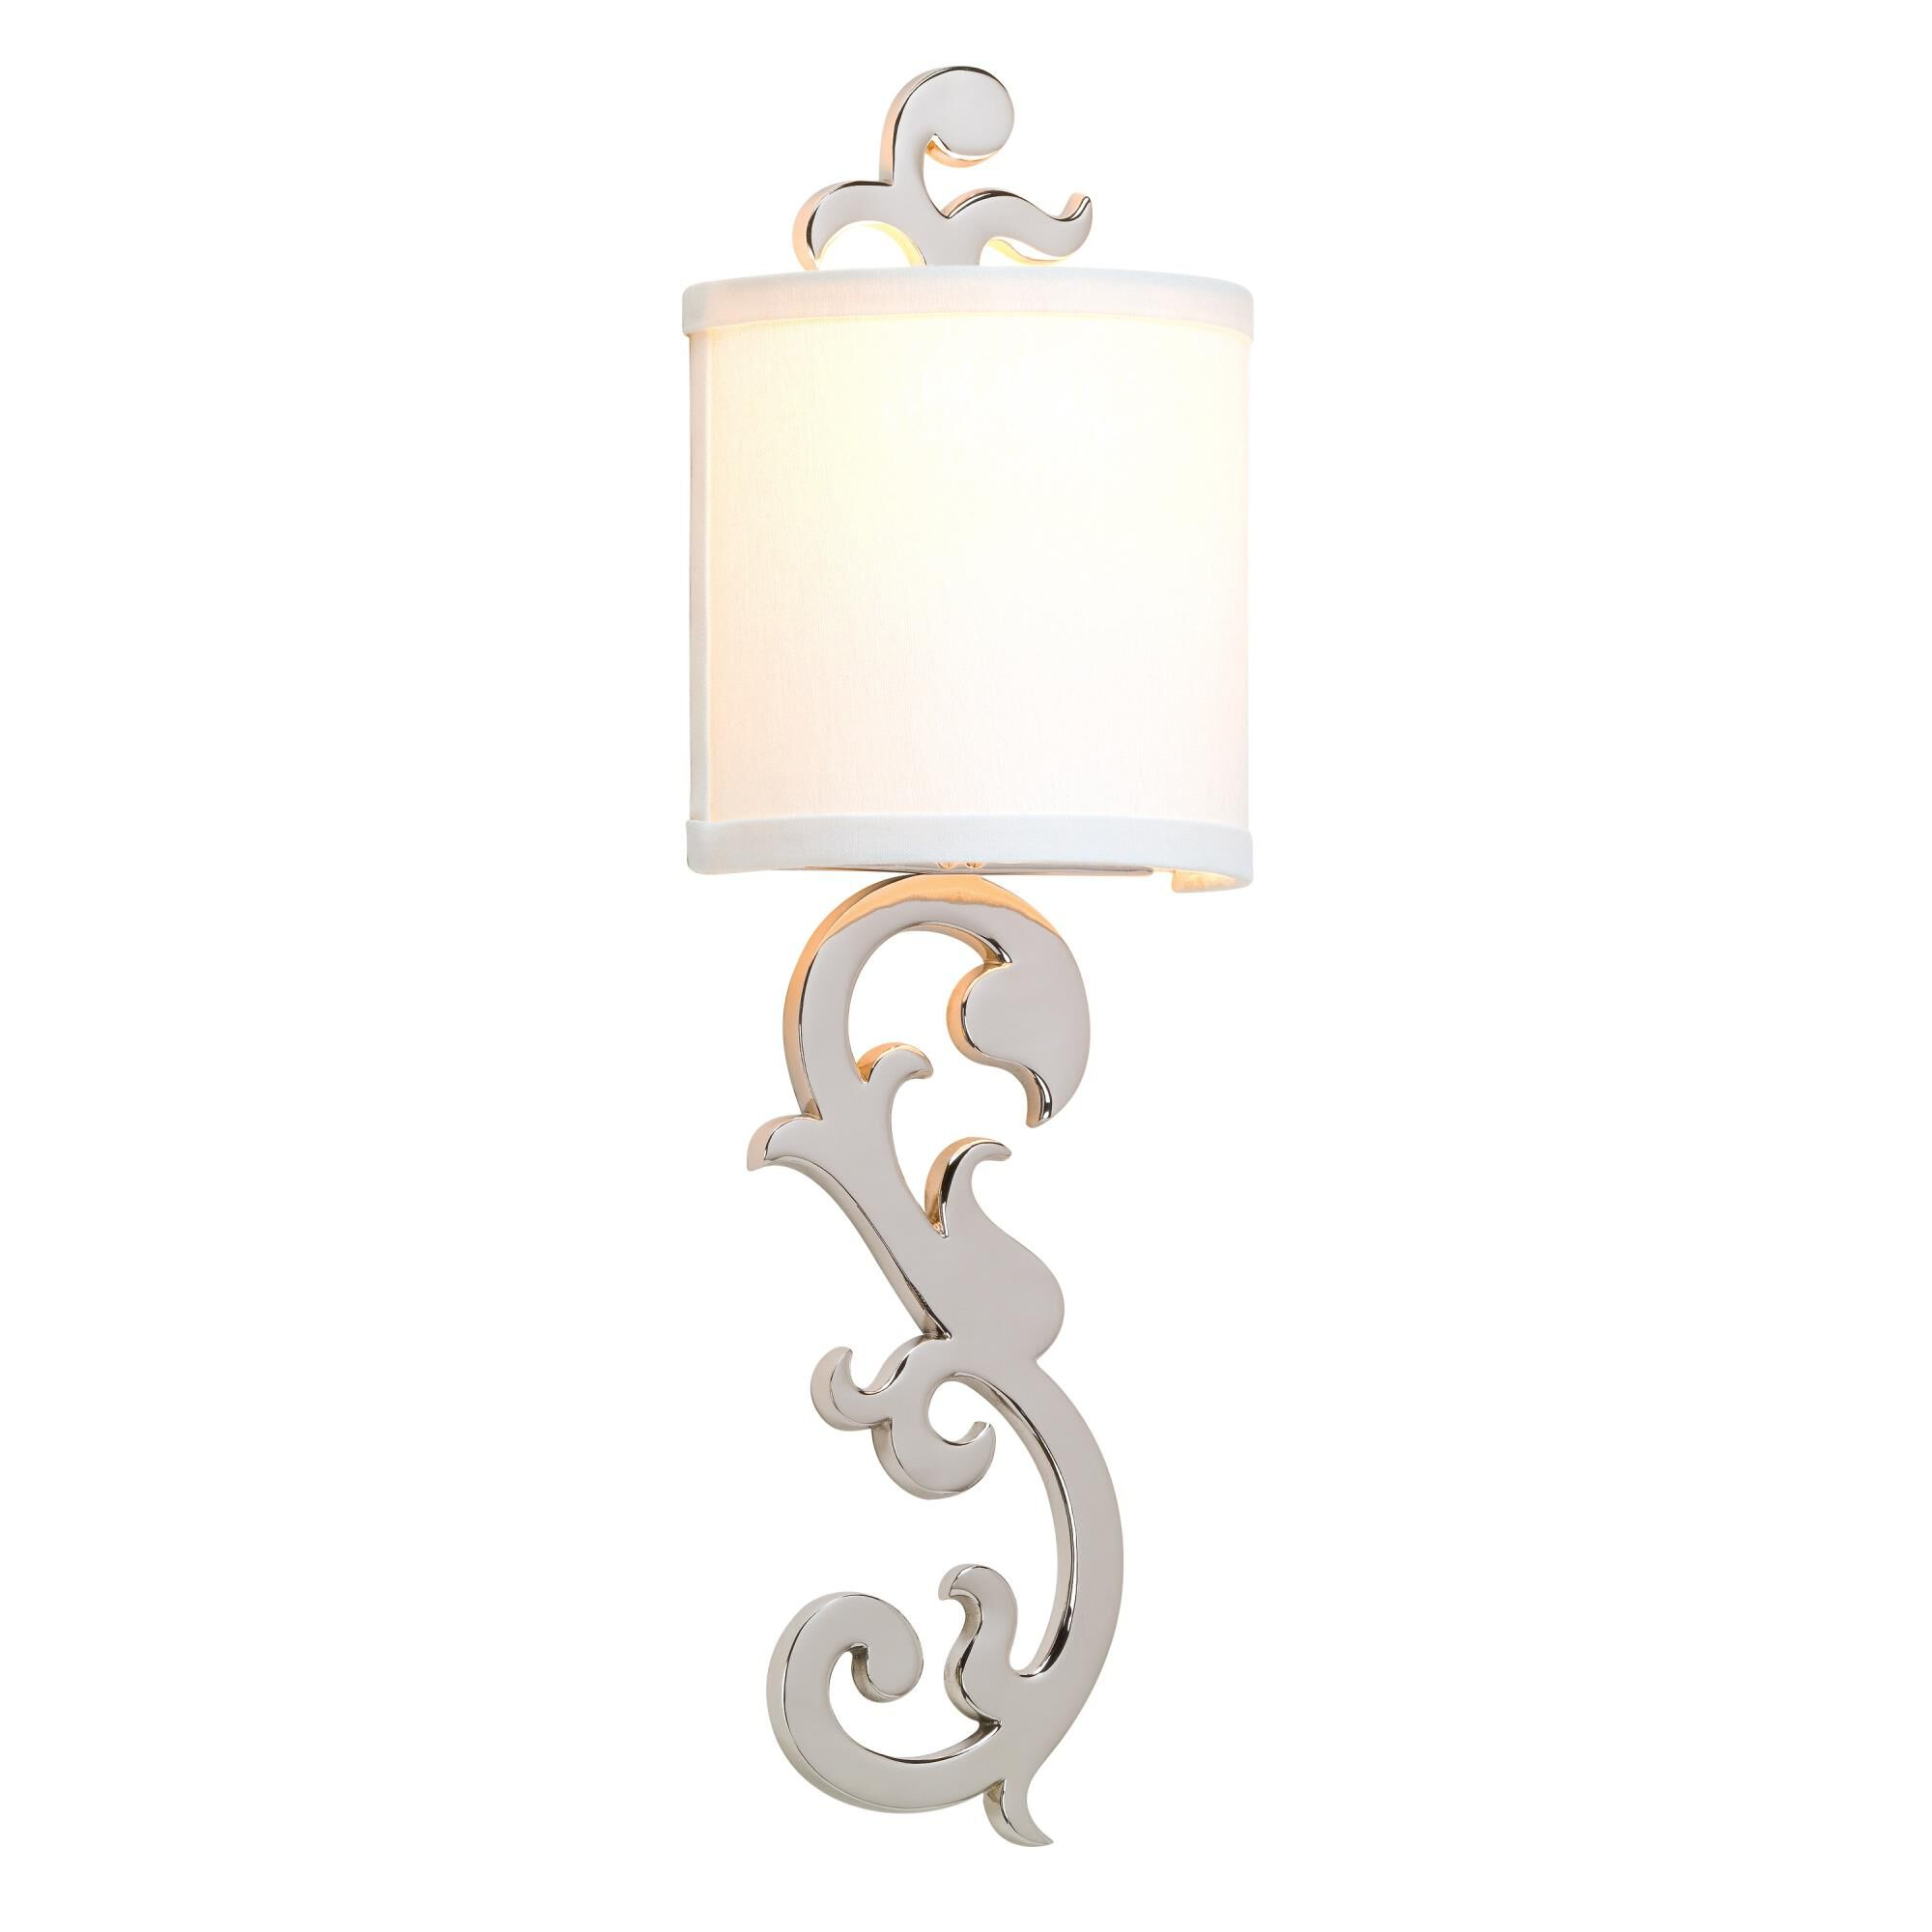 Corbett Lighting Romeo 6 Inch Wall Sconce Romeo - 152-11 - Transitional Wall Sconce